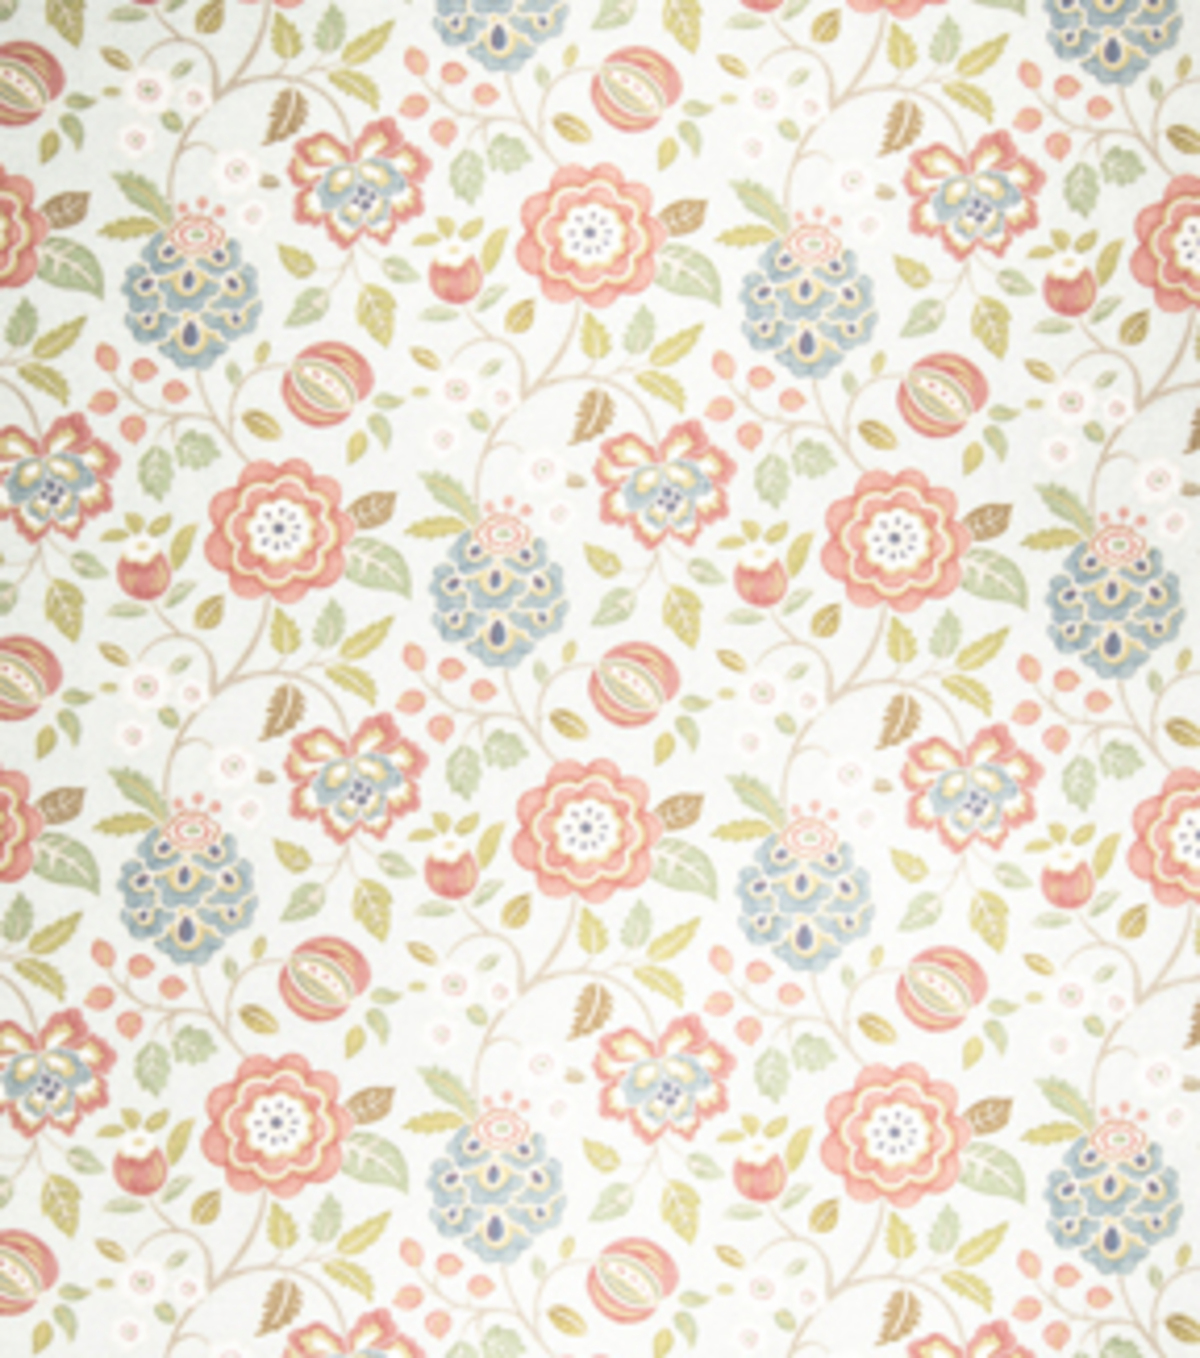 Home Decor 8\u0022x8\u0022 Fabric Swatch-SMC Designs Selma Sea Breeze